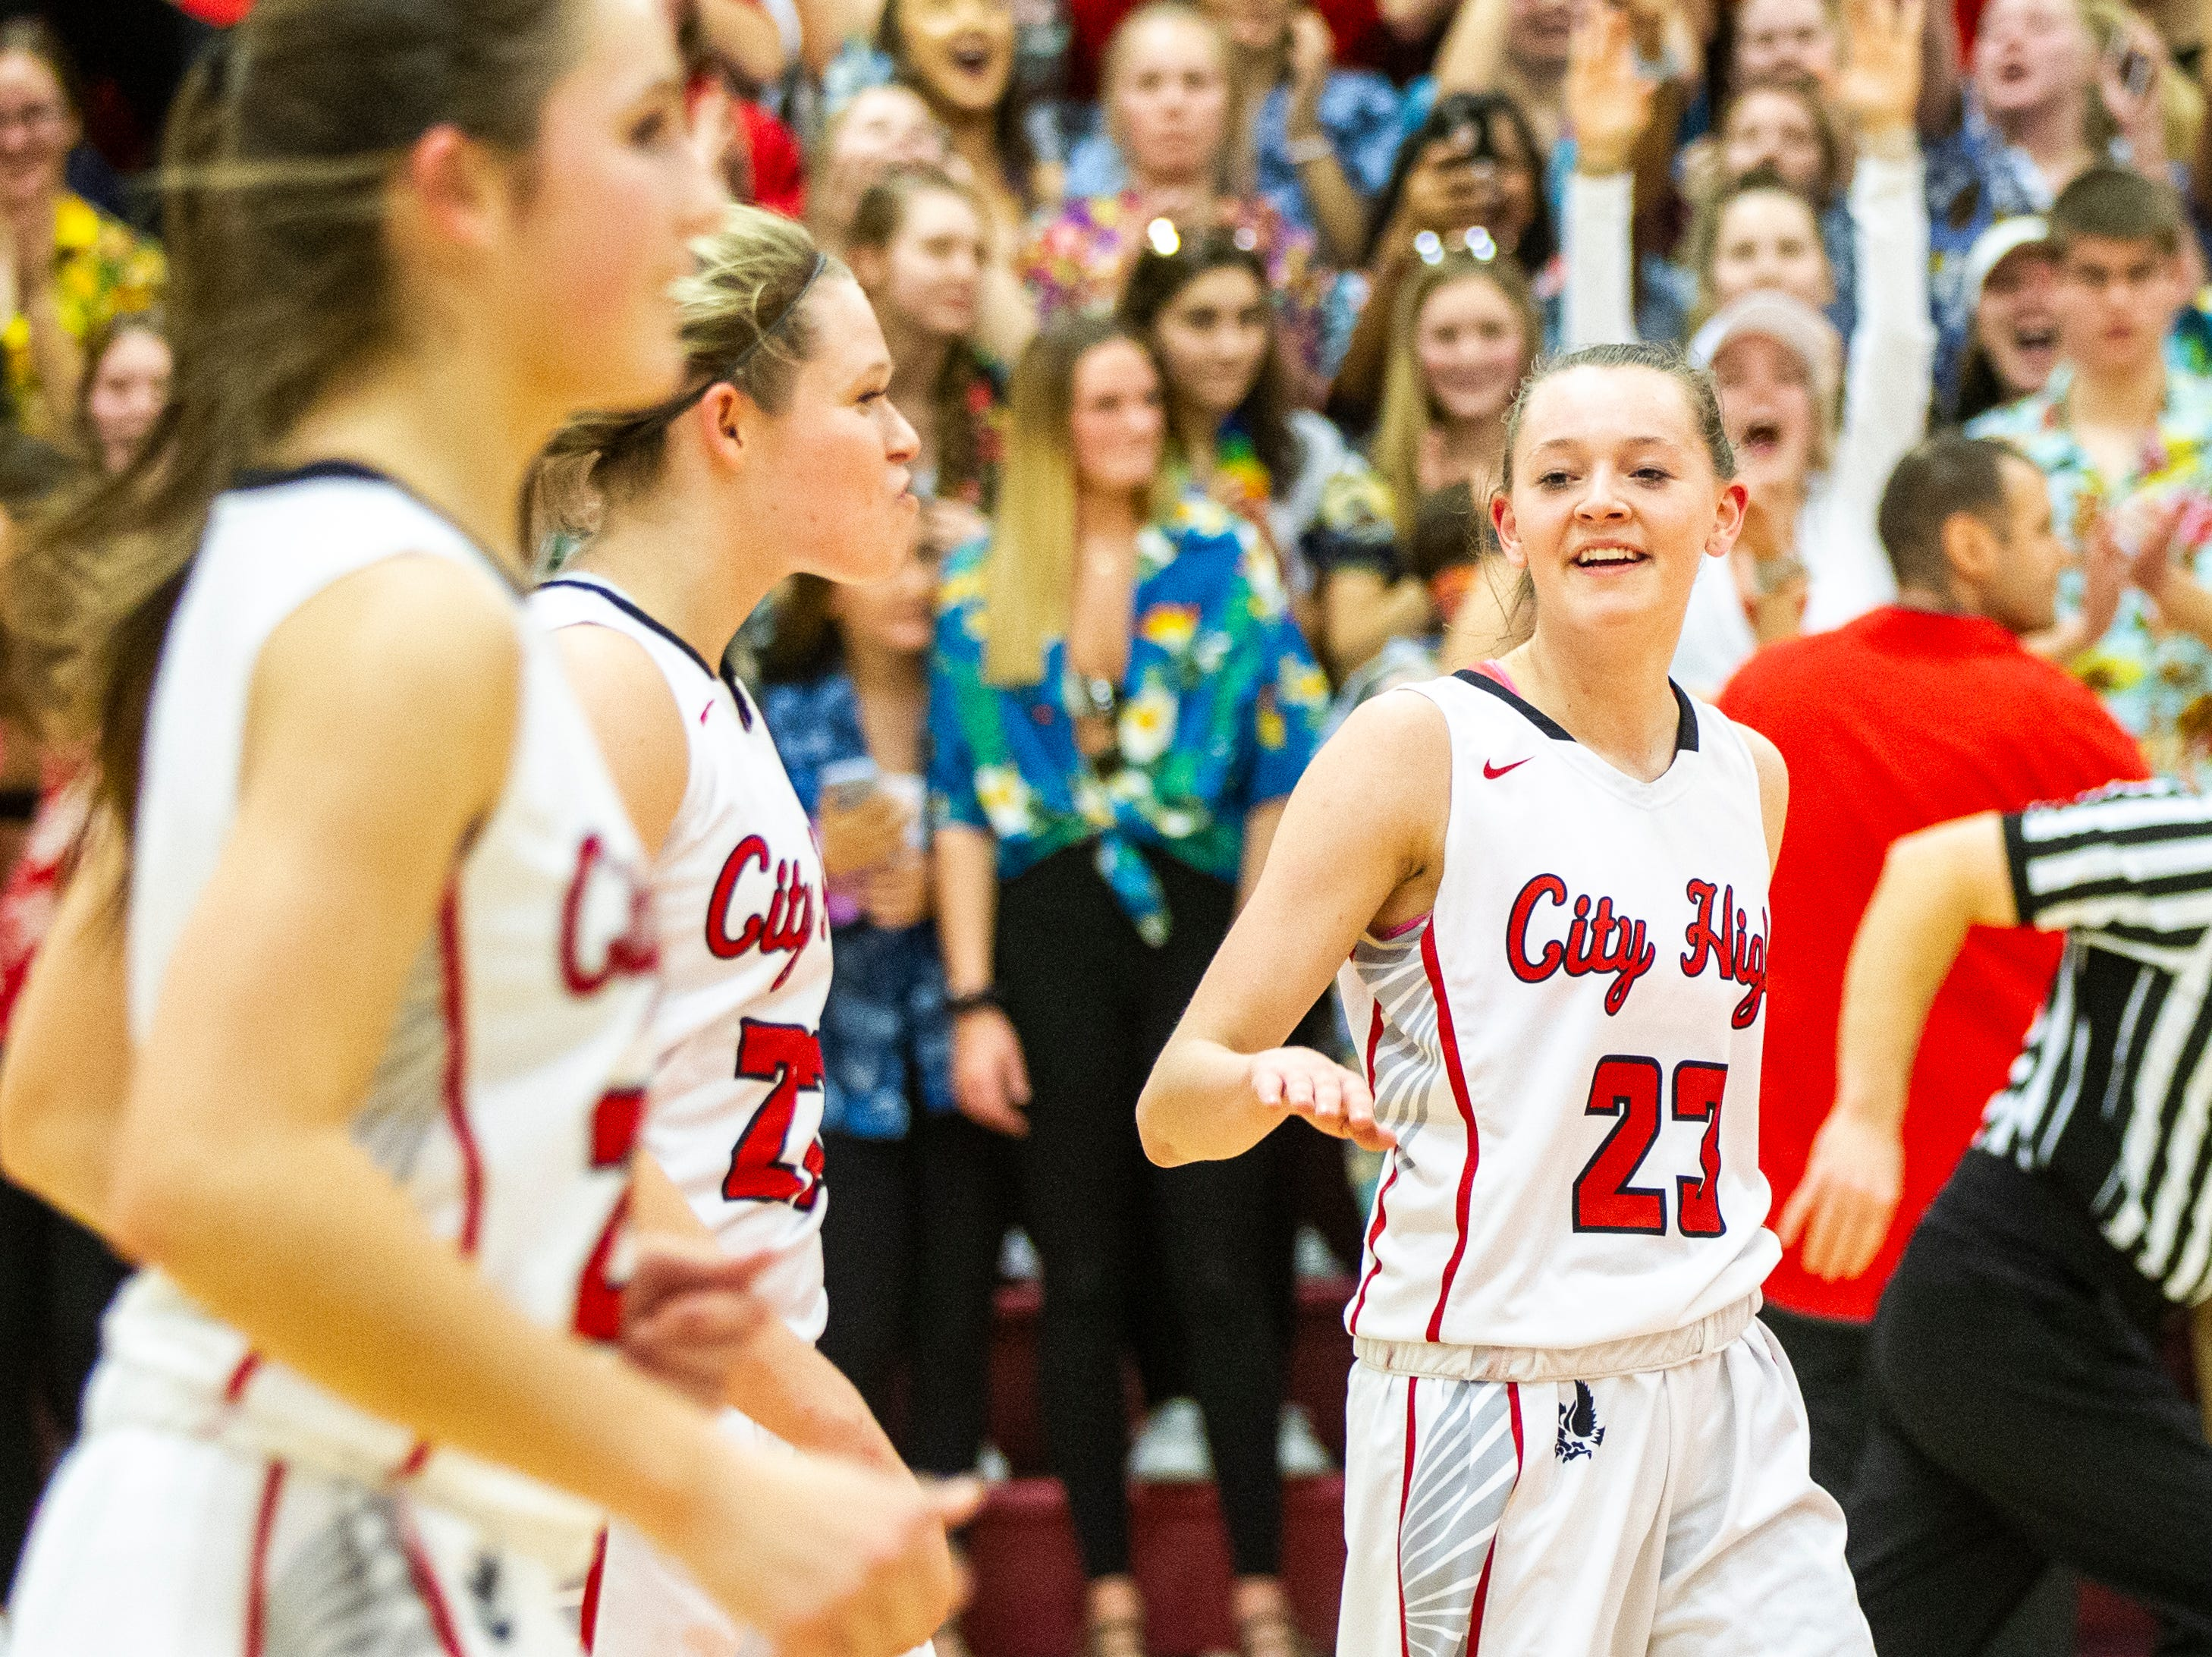 Iowa City High's Aubrey Joens (23) high-fives Iowa City High's Paige Rocca (22) after a Class 5A girls basketball game on Friday, Dec. 7, 2018, at City High School in Iowa City. The Little Hawks defeated the Women of Troy, 64-57.